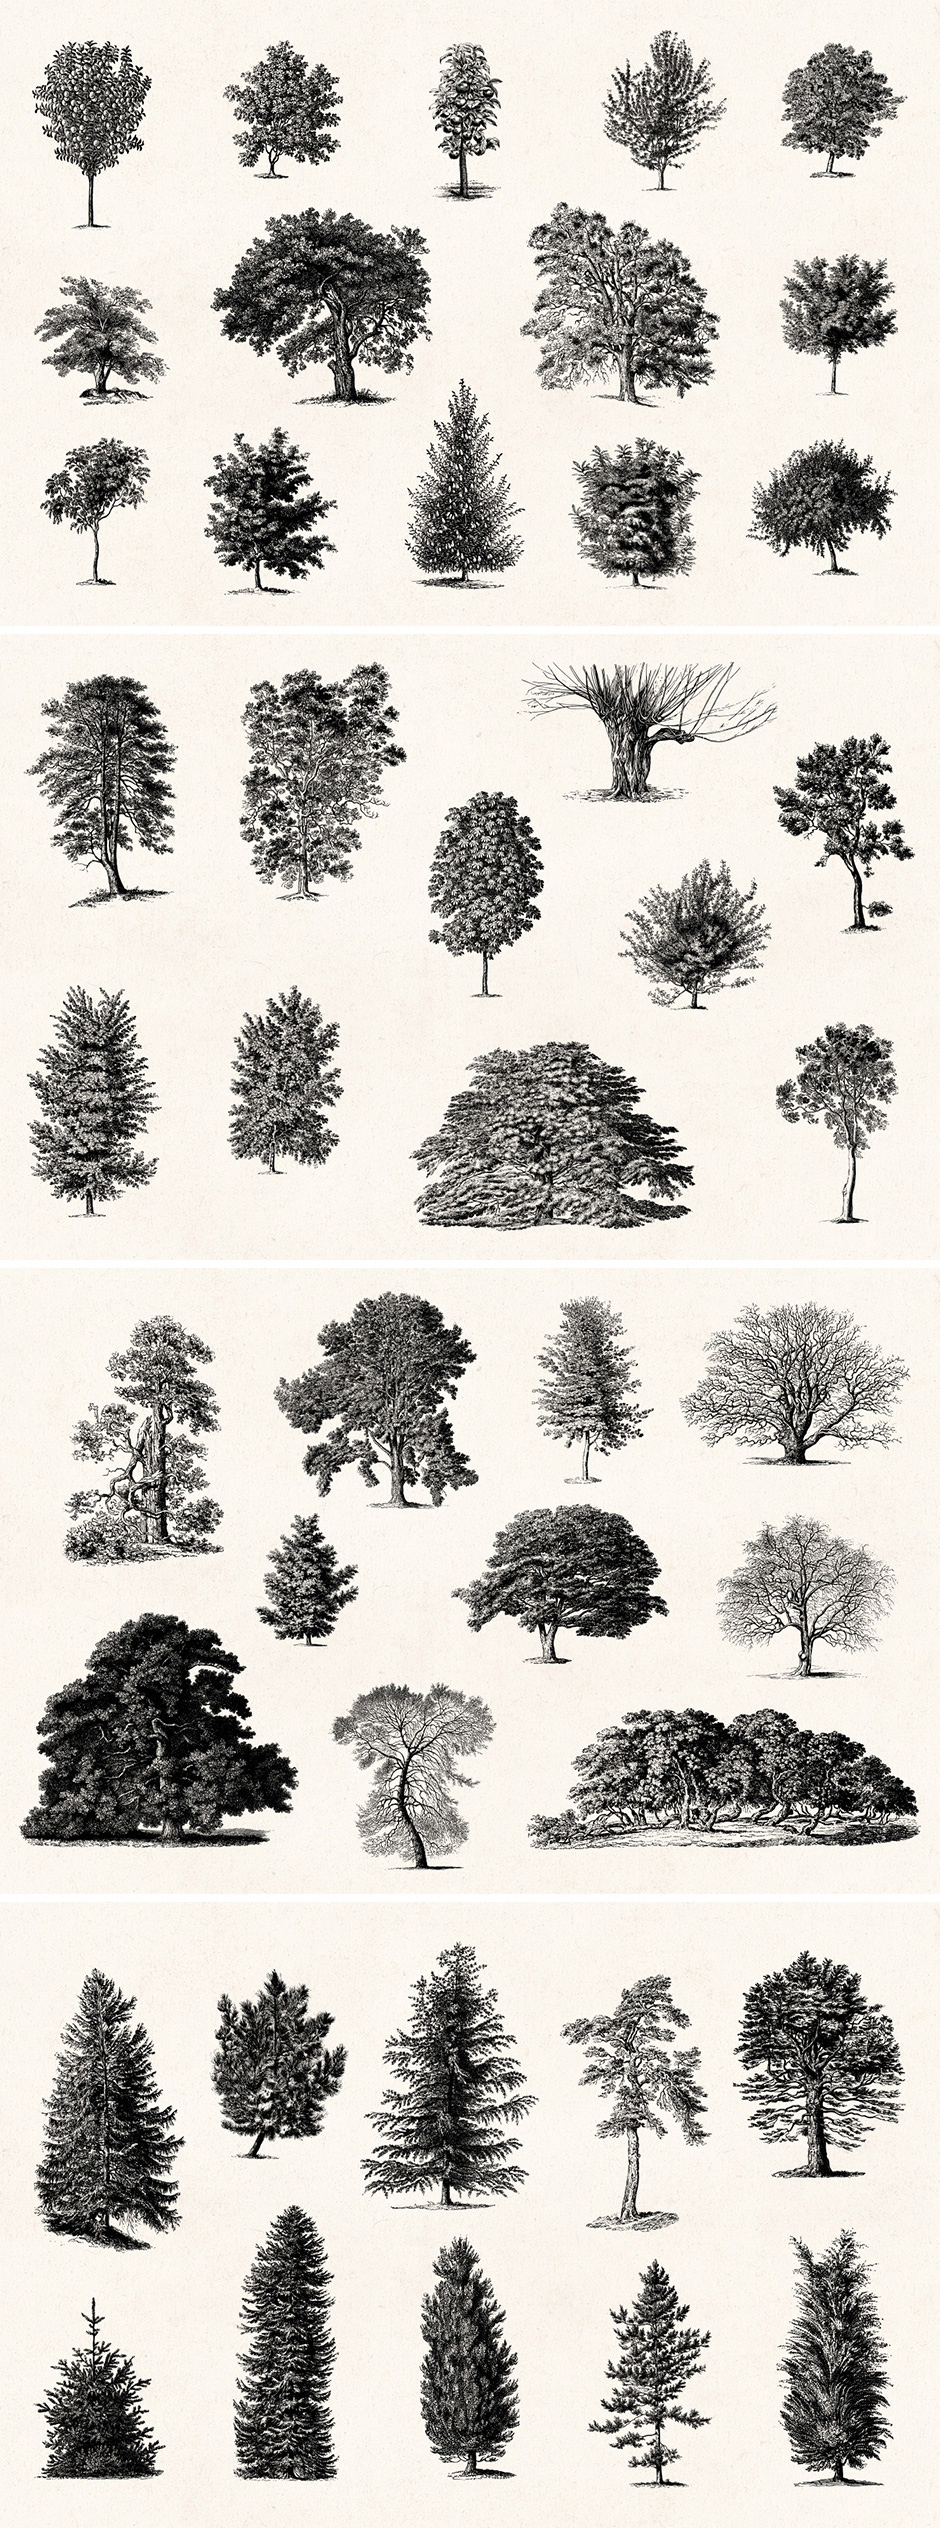 …Vintage Tree Illustrations Set